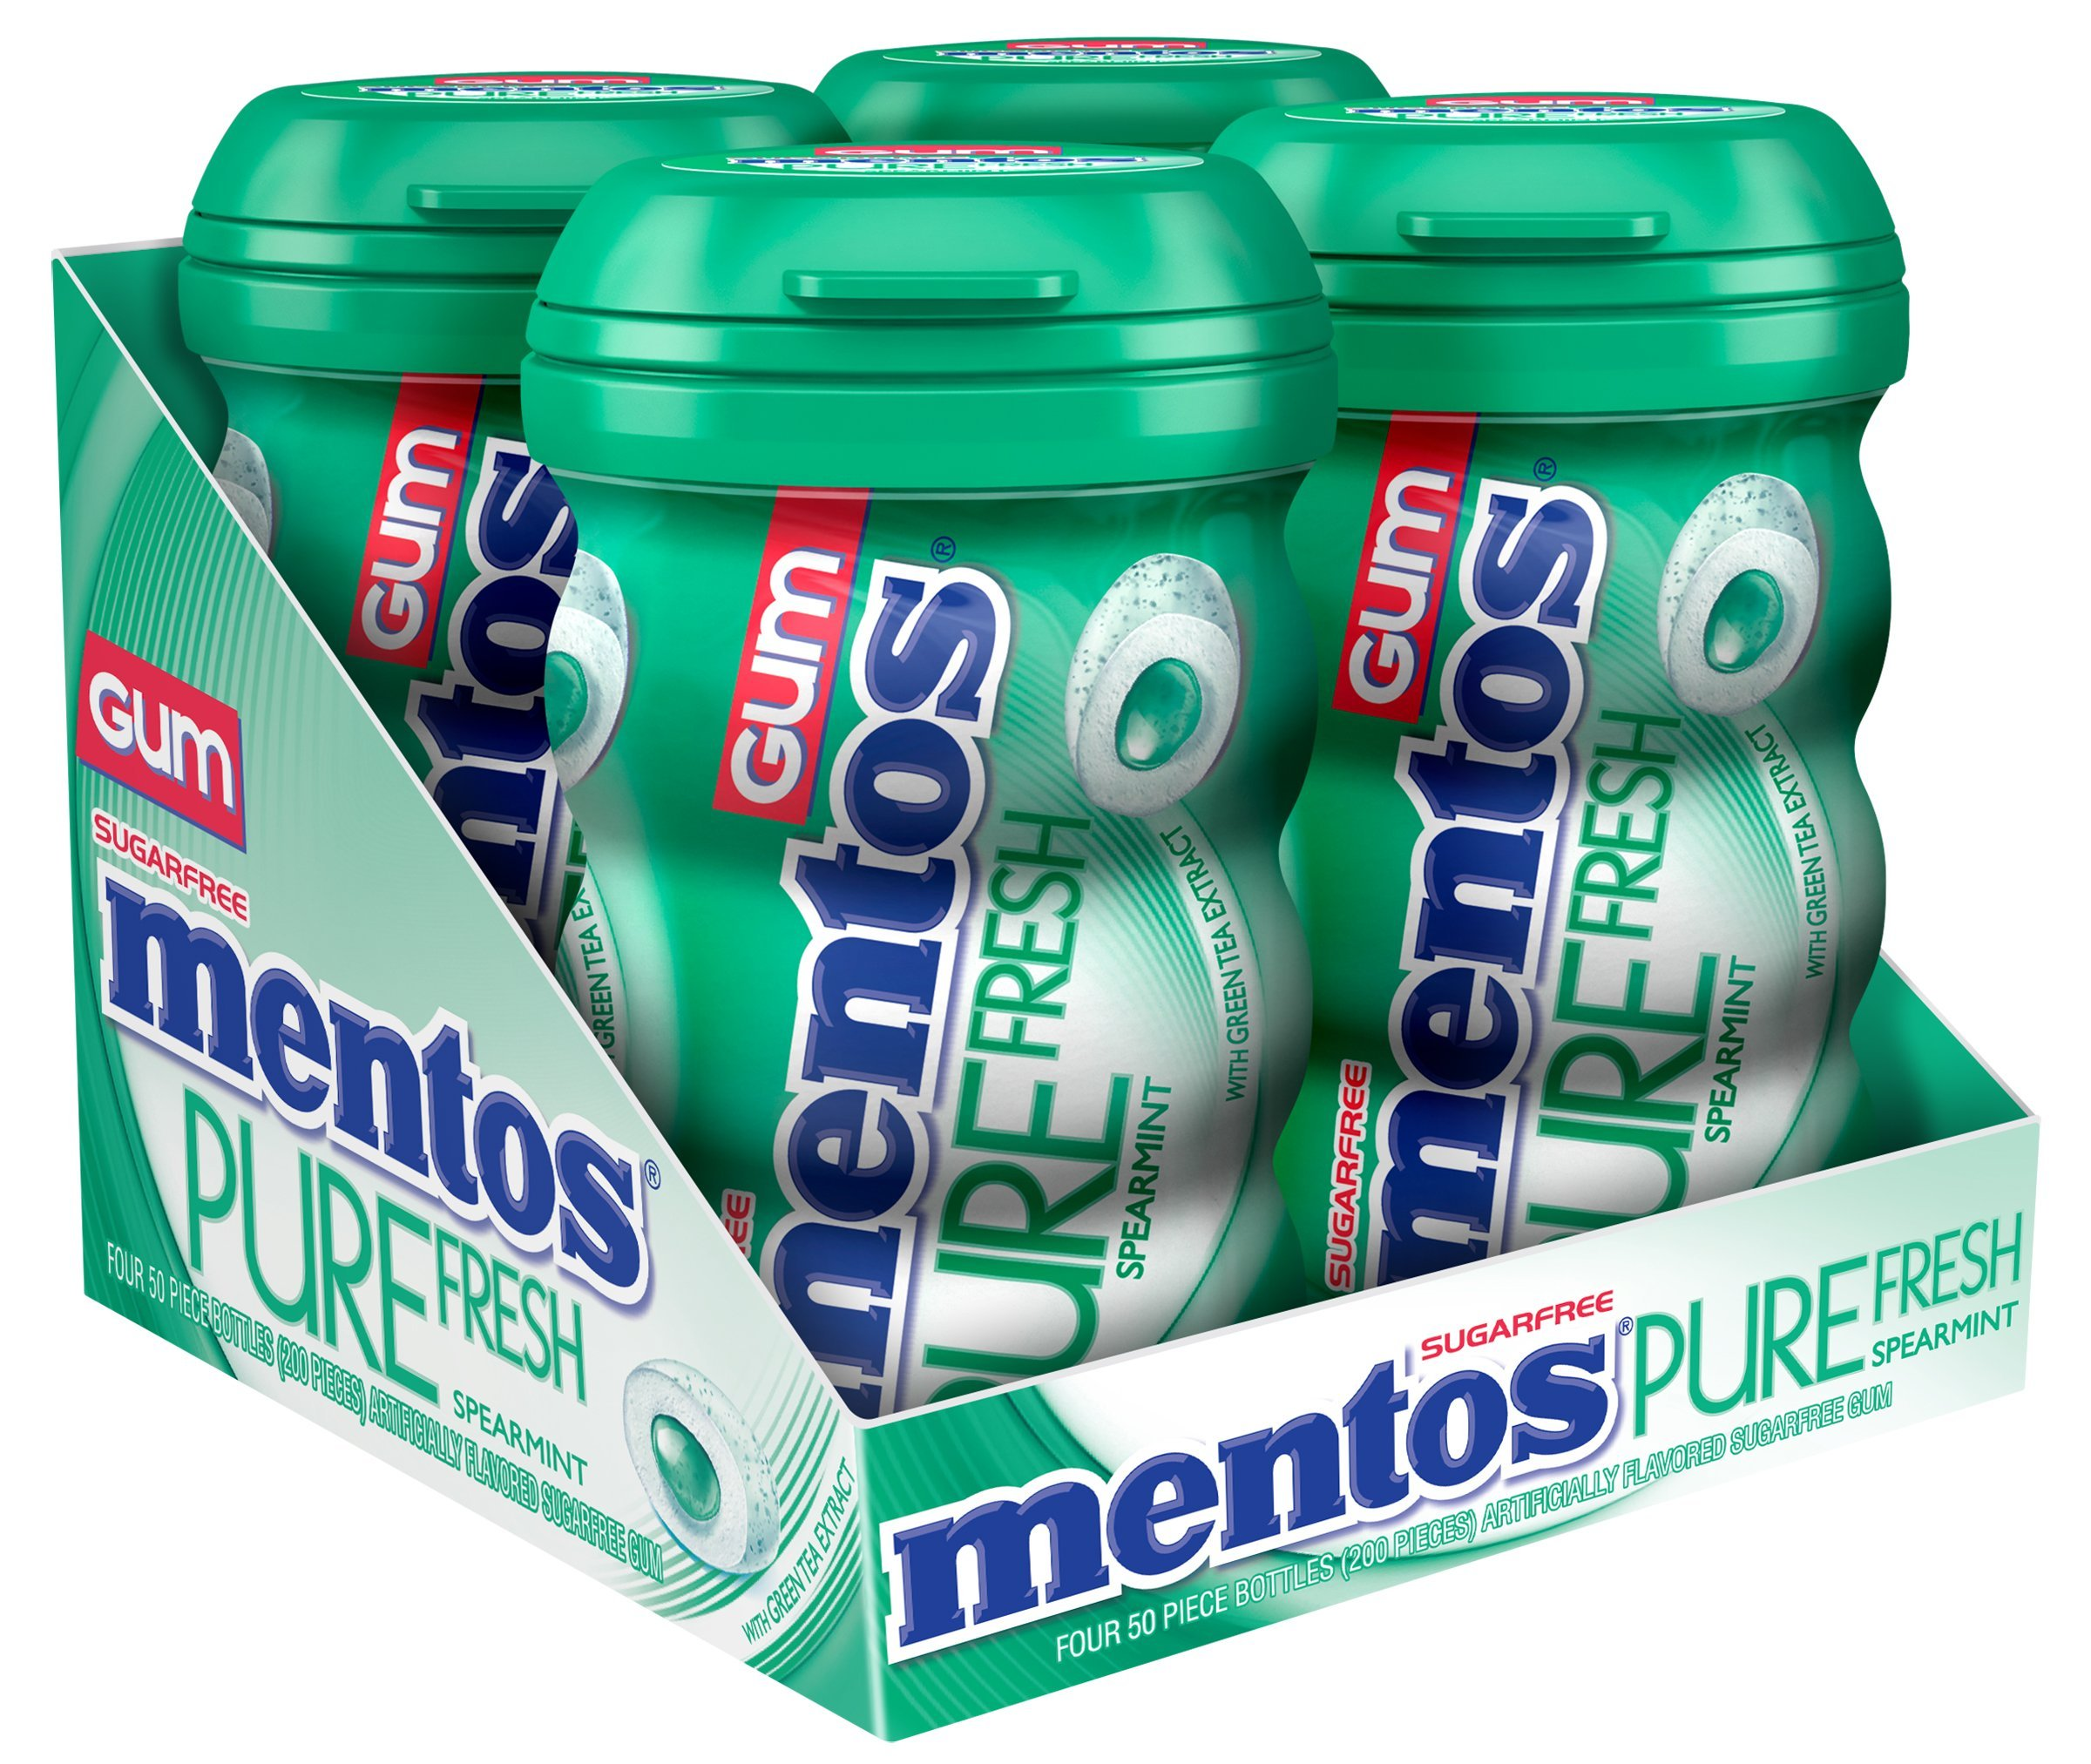 Mentos Pure Fresh Sugar-Free Chewing Gum with Xylitol, Spearmint, 50 Piece Bottle (Pack of 4)